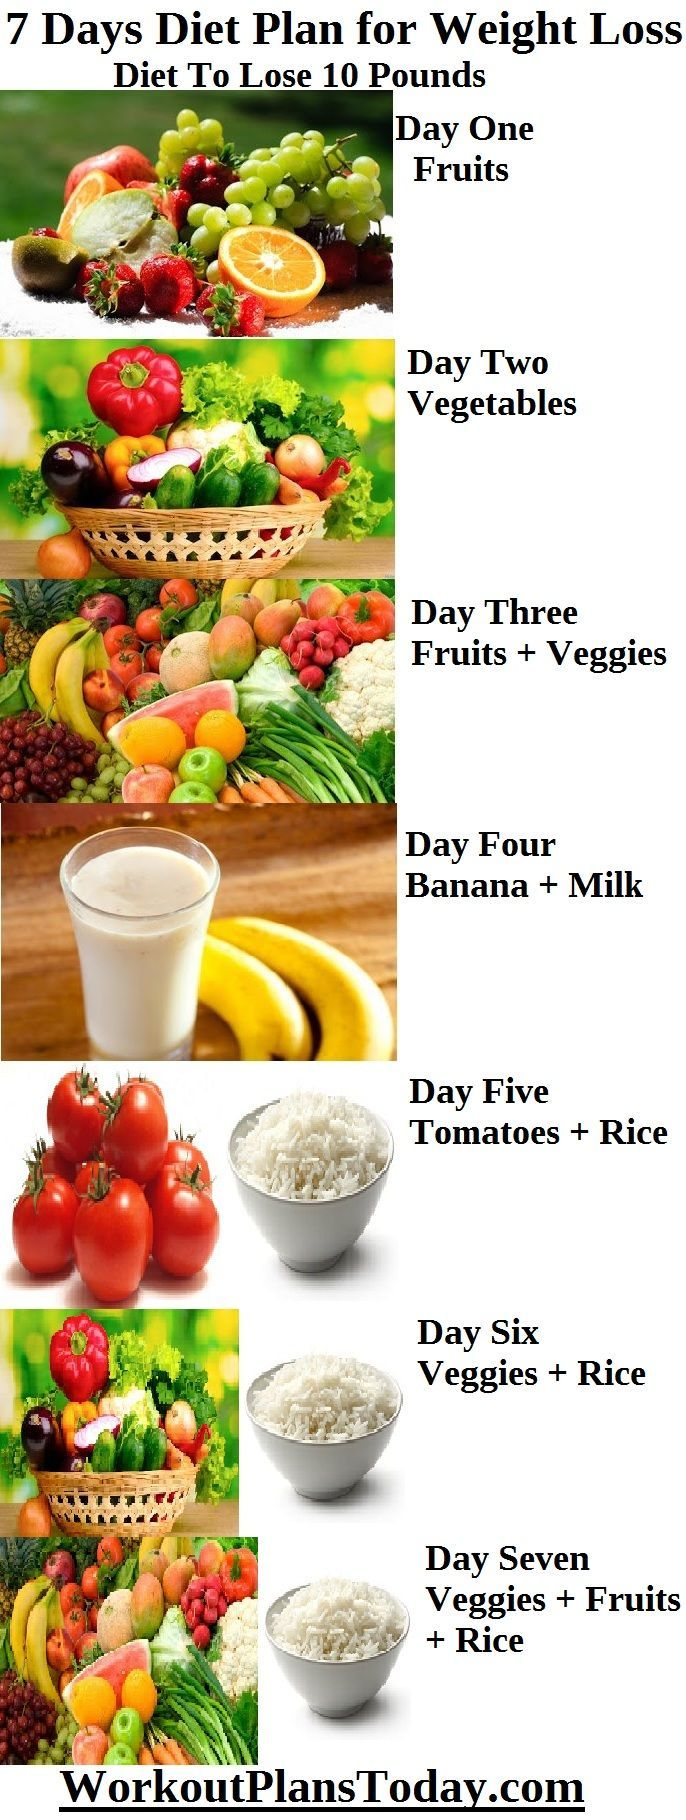 7 Days Diet Plan For Weight Loss  Diet To Lose 10 Pounds Day